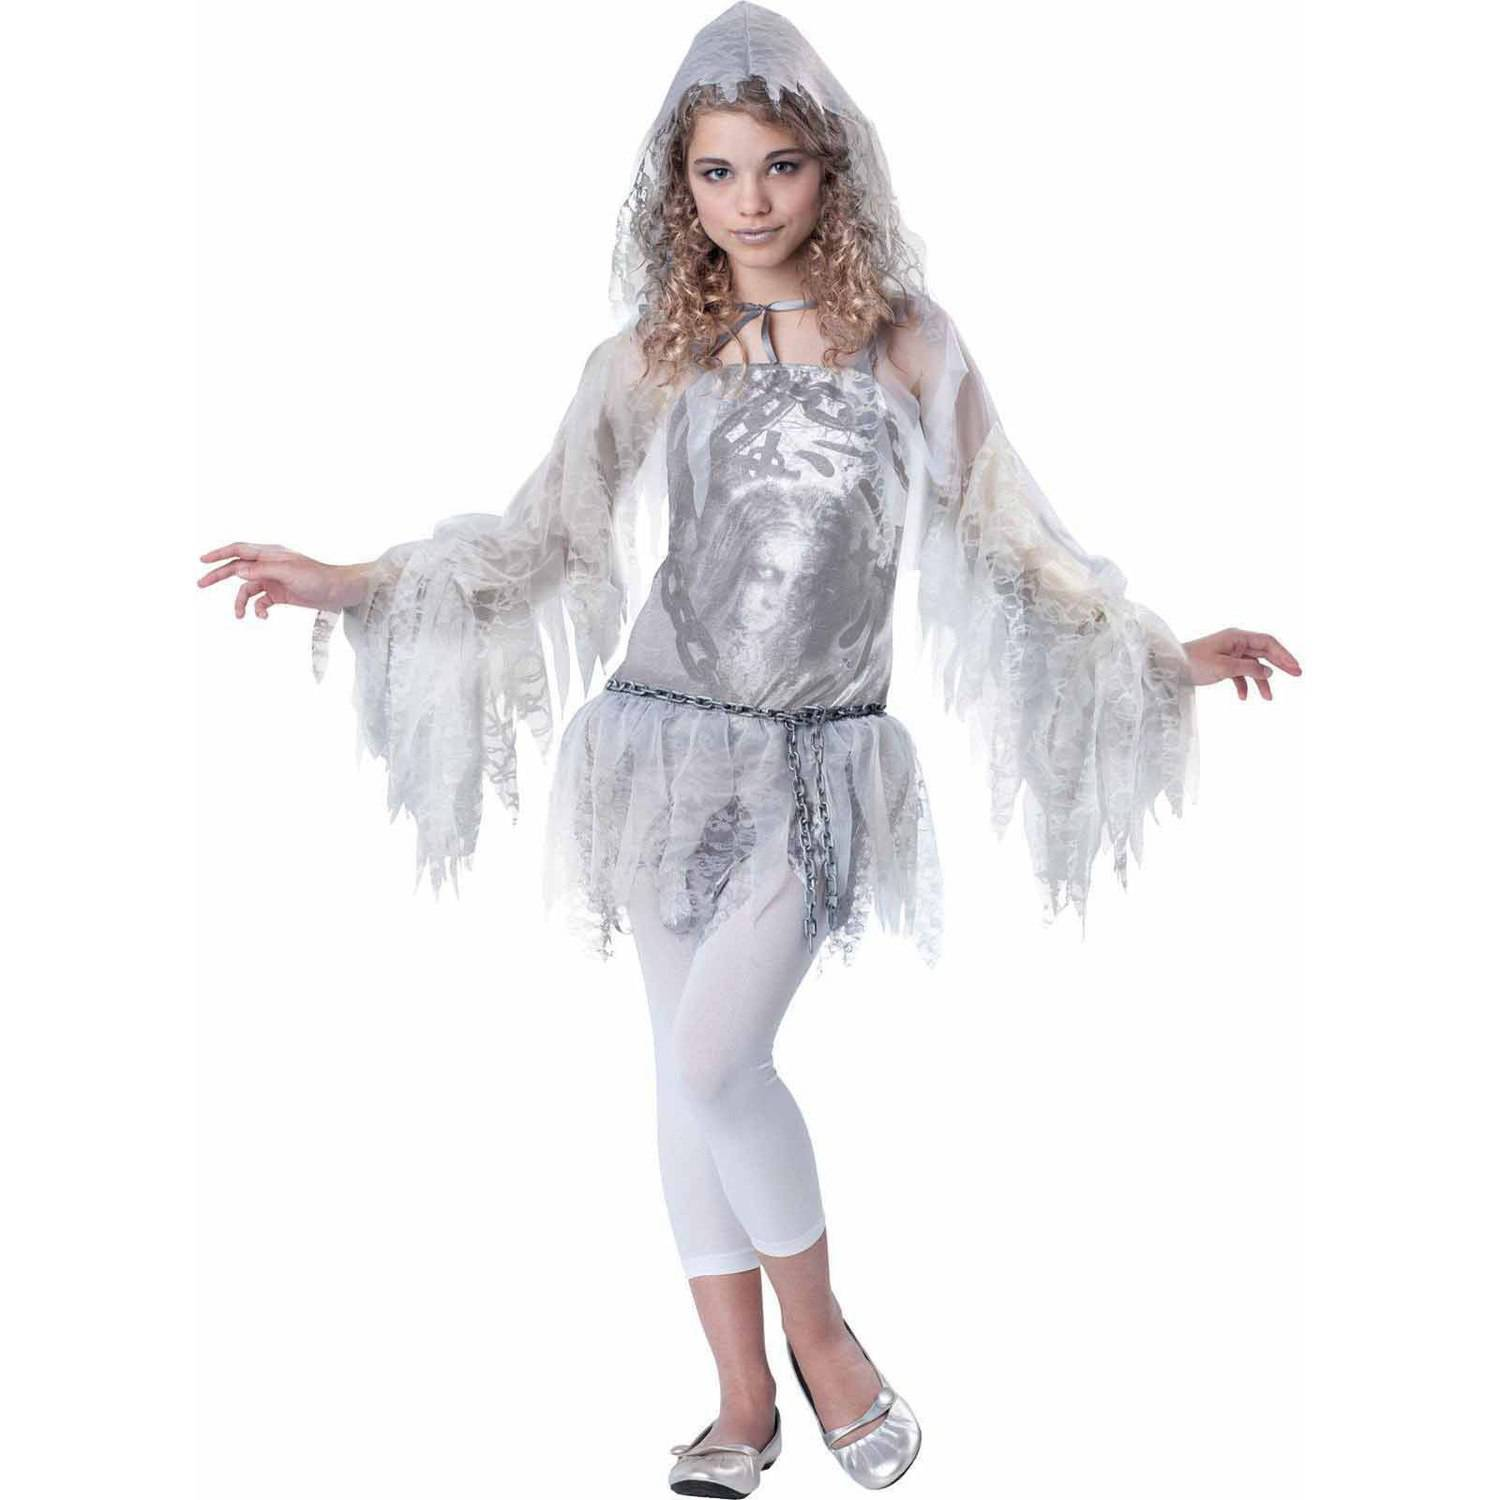 sassy spirit girls teen halloween costume walmartcom - Girls Teen Halloween Costumes